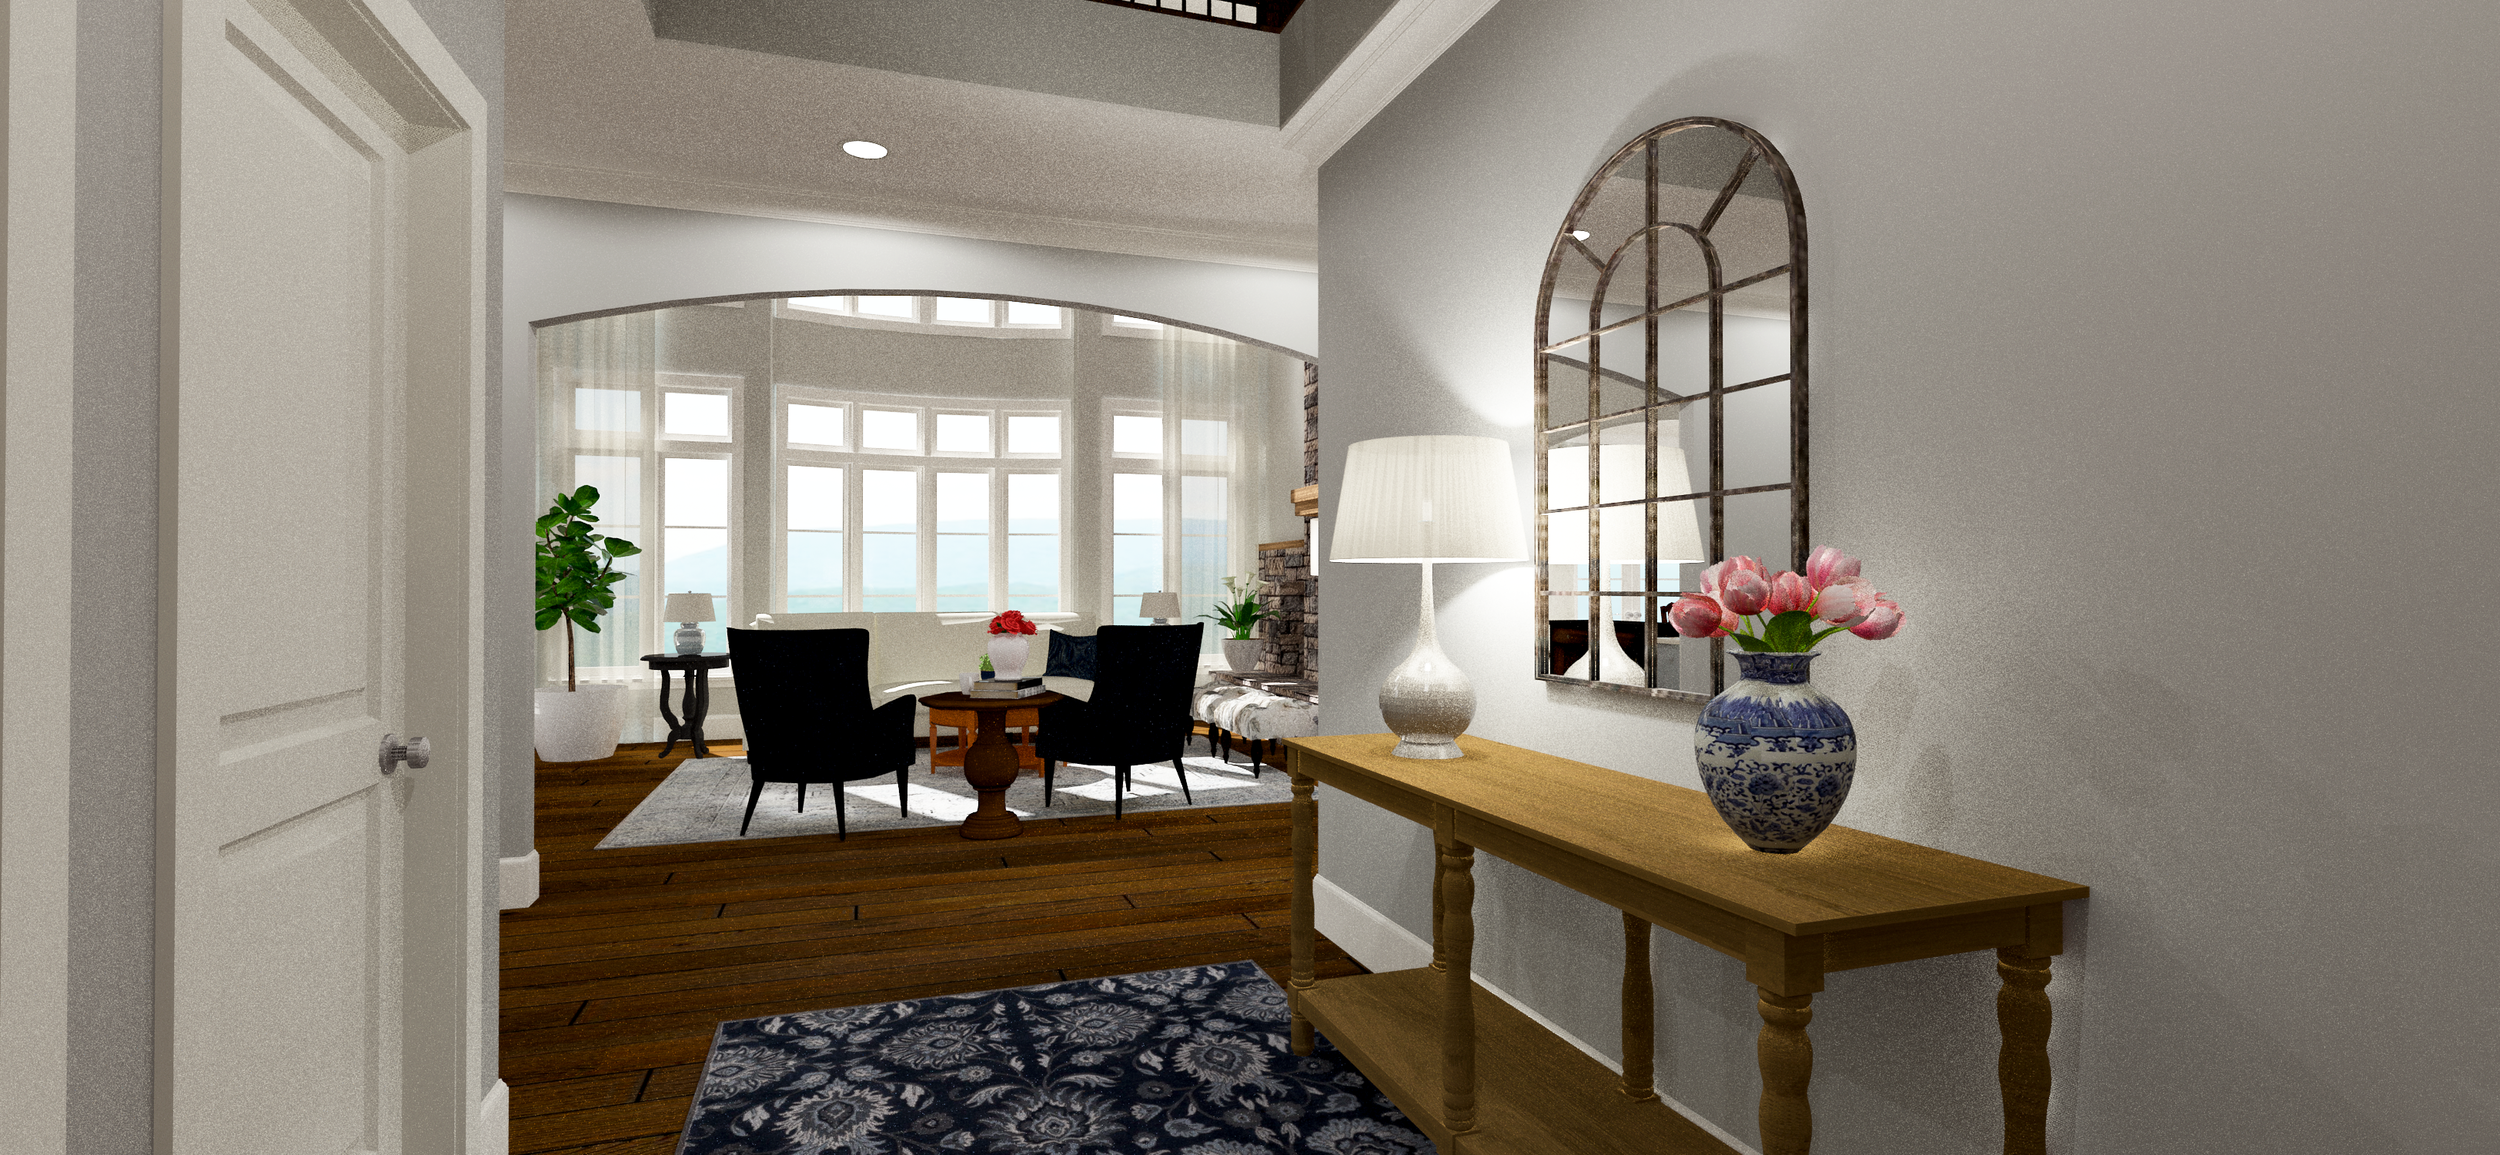 Elegant Entryway | Designed by  Karen Grant Interiors | Rendered by Kelly Fridline Design using Chief Architect X10